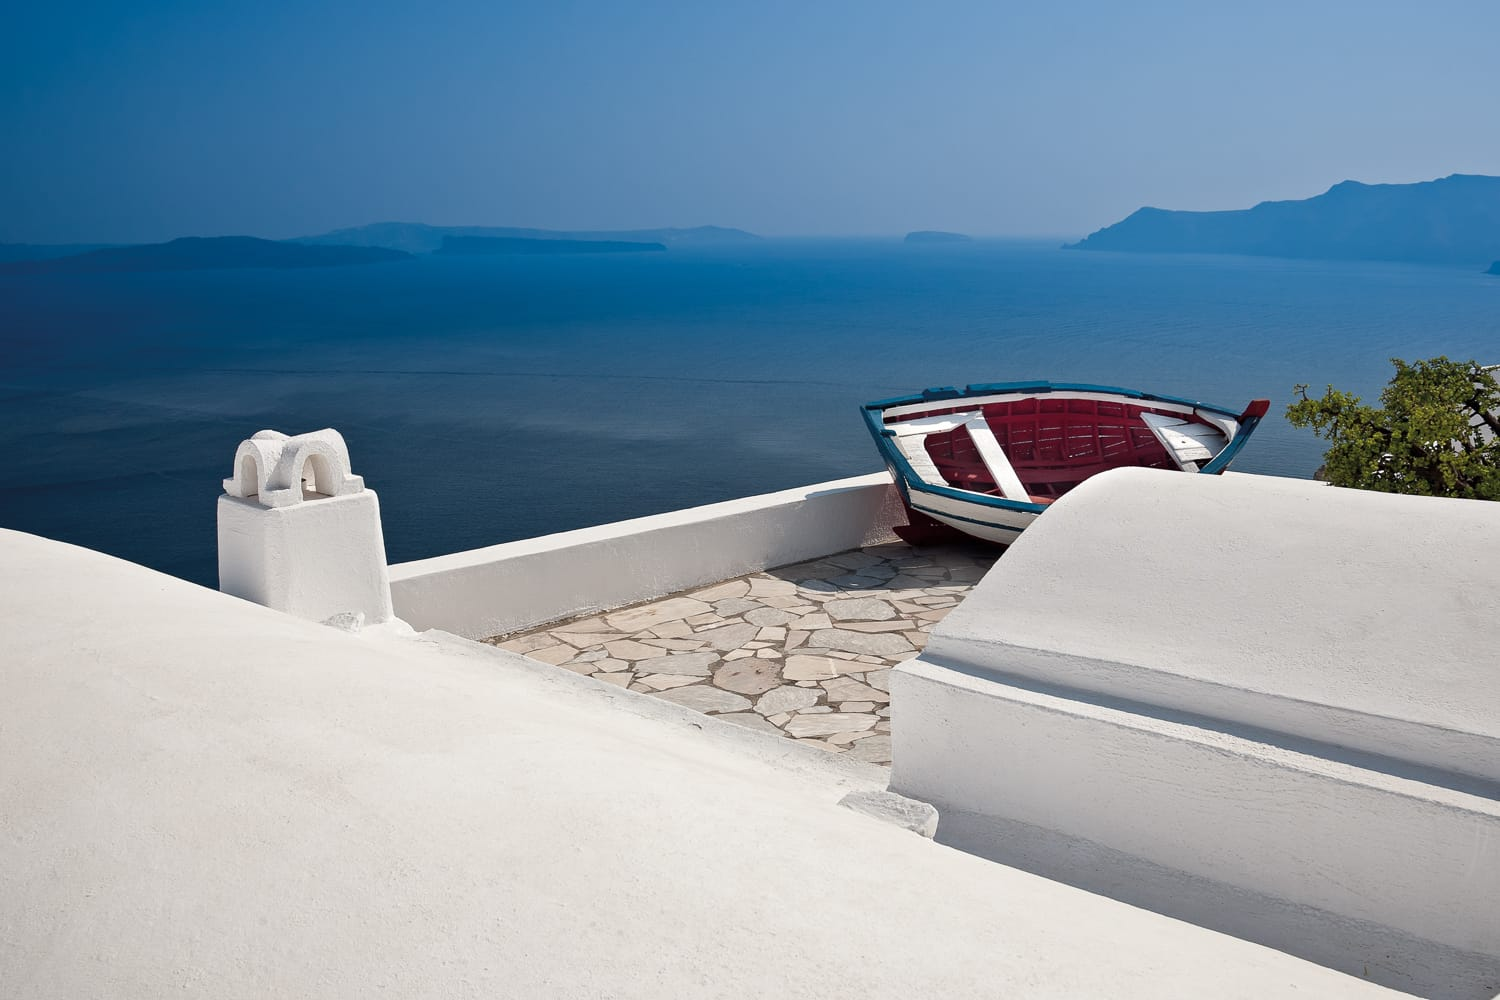 Santorini – blue and white paradise